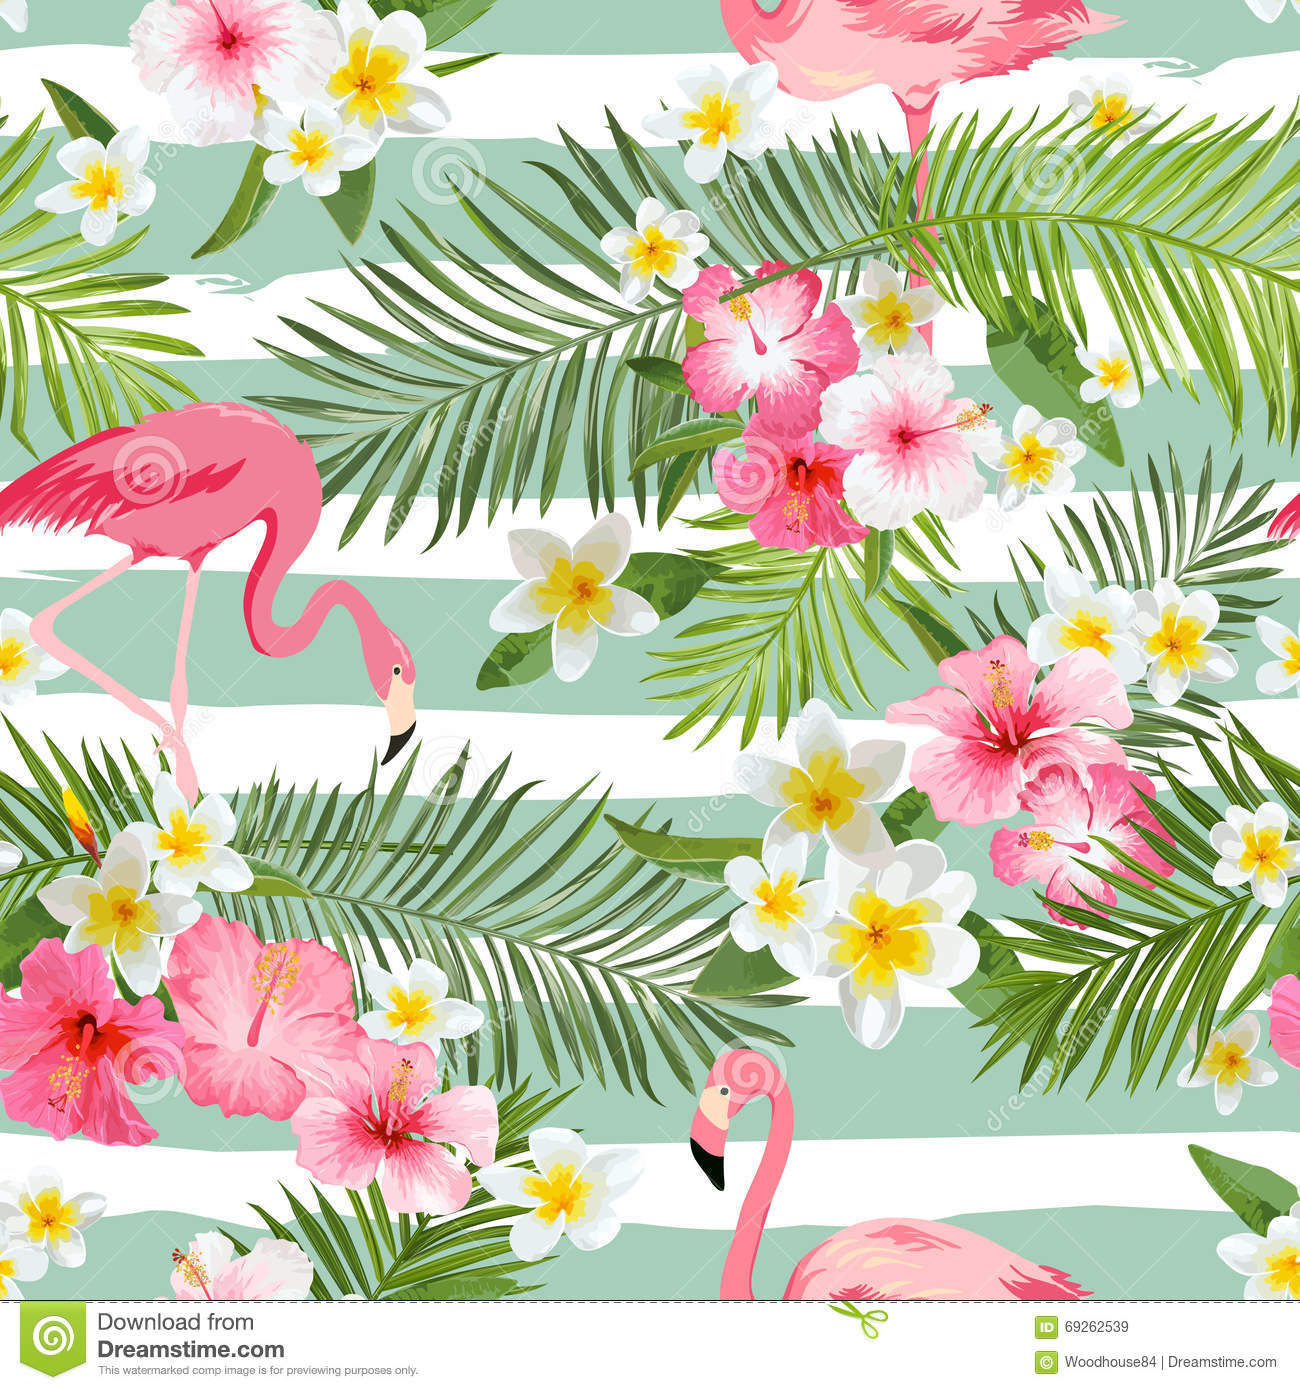 Floral Print Iphone Wallpaper Flamingo Background Tropical Flowers Background Stock